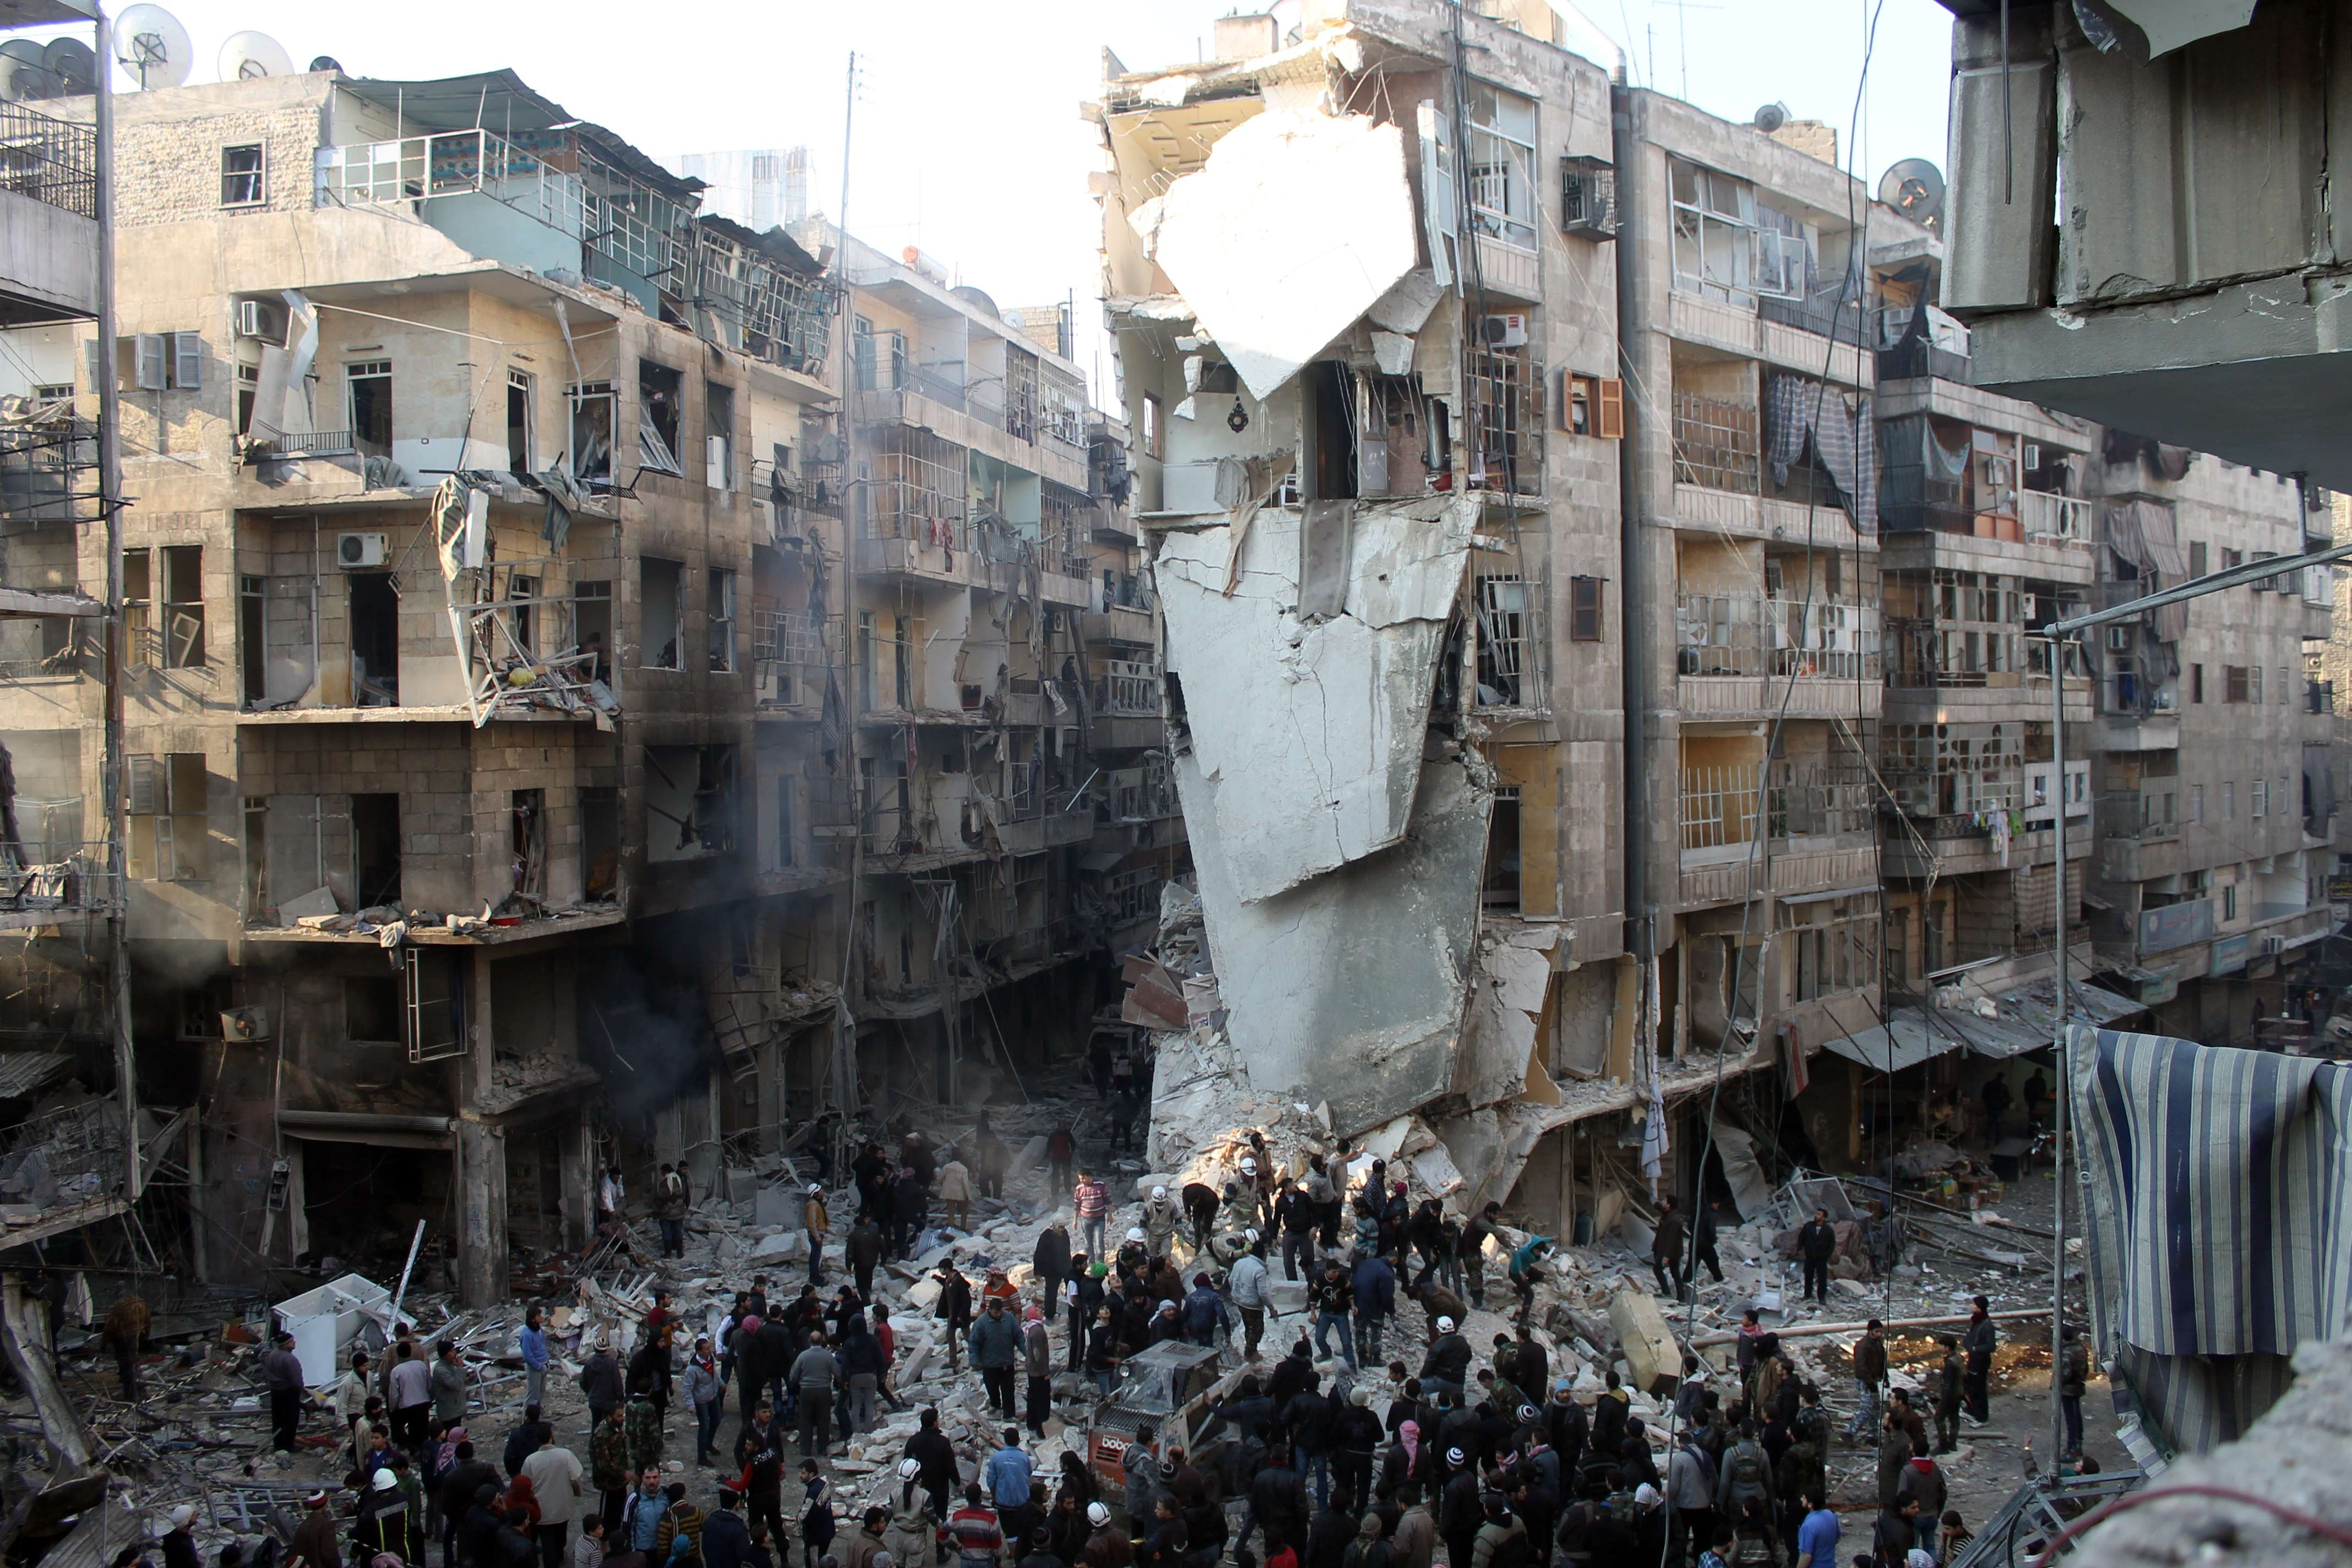 Syrians search for survivors amidst the rubble following an airstrike in the Shaar neighborhood of Aleppo on December 17, 2013.  (AFP PHOTO/MOHAMMED AL-KHATIEB)